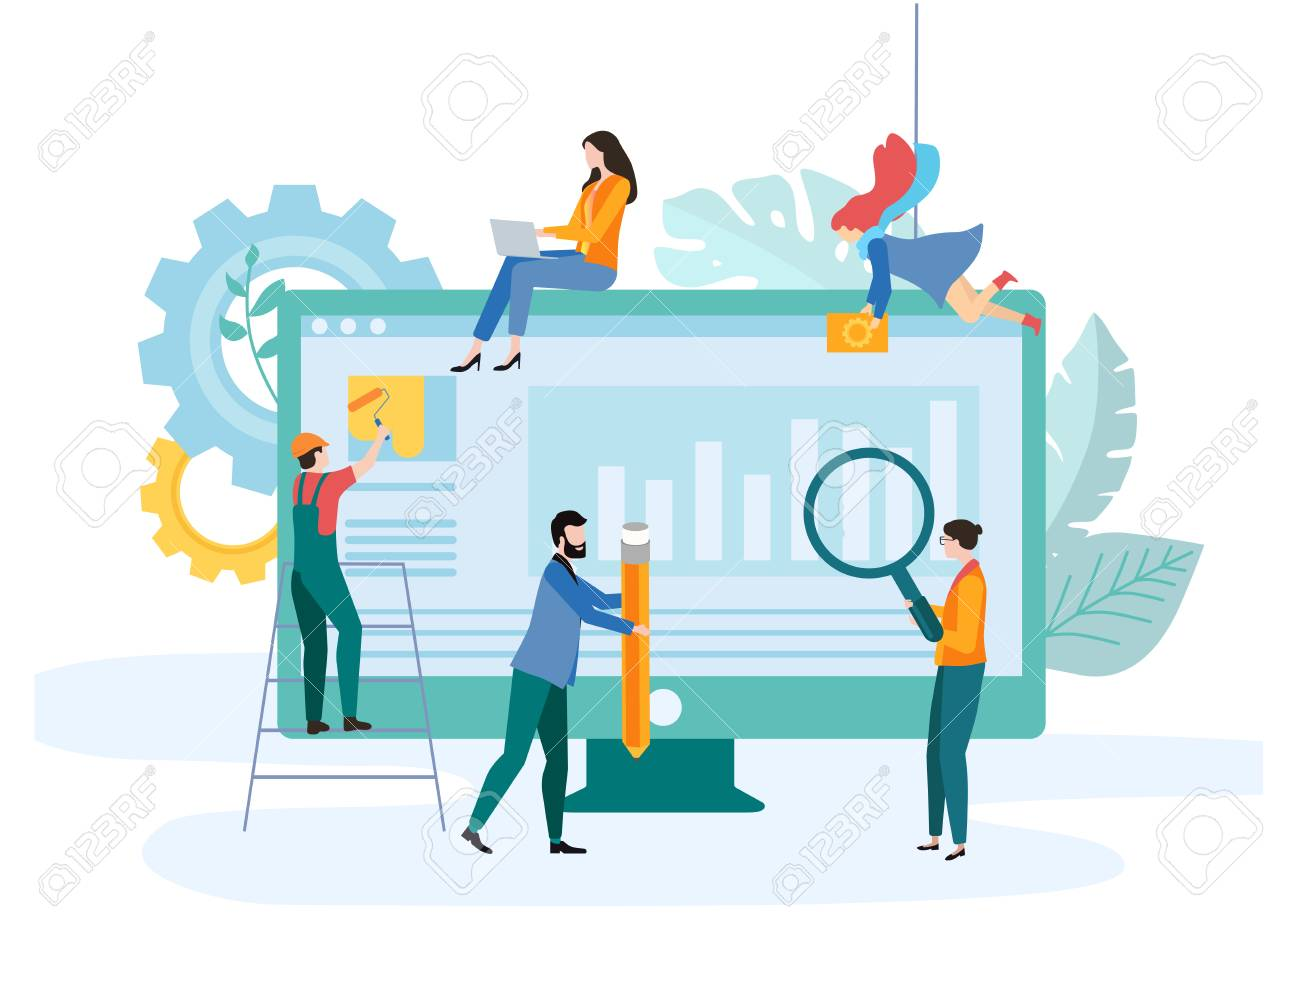 Web development. Template with computer and people creating website. Computer technologies, online support, consultation, internet, web application programming and design. Vector, flat style. - 116992011